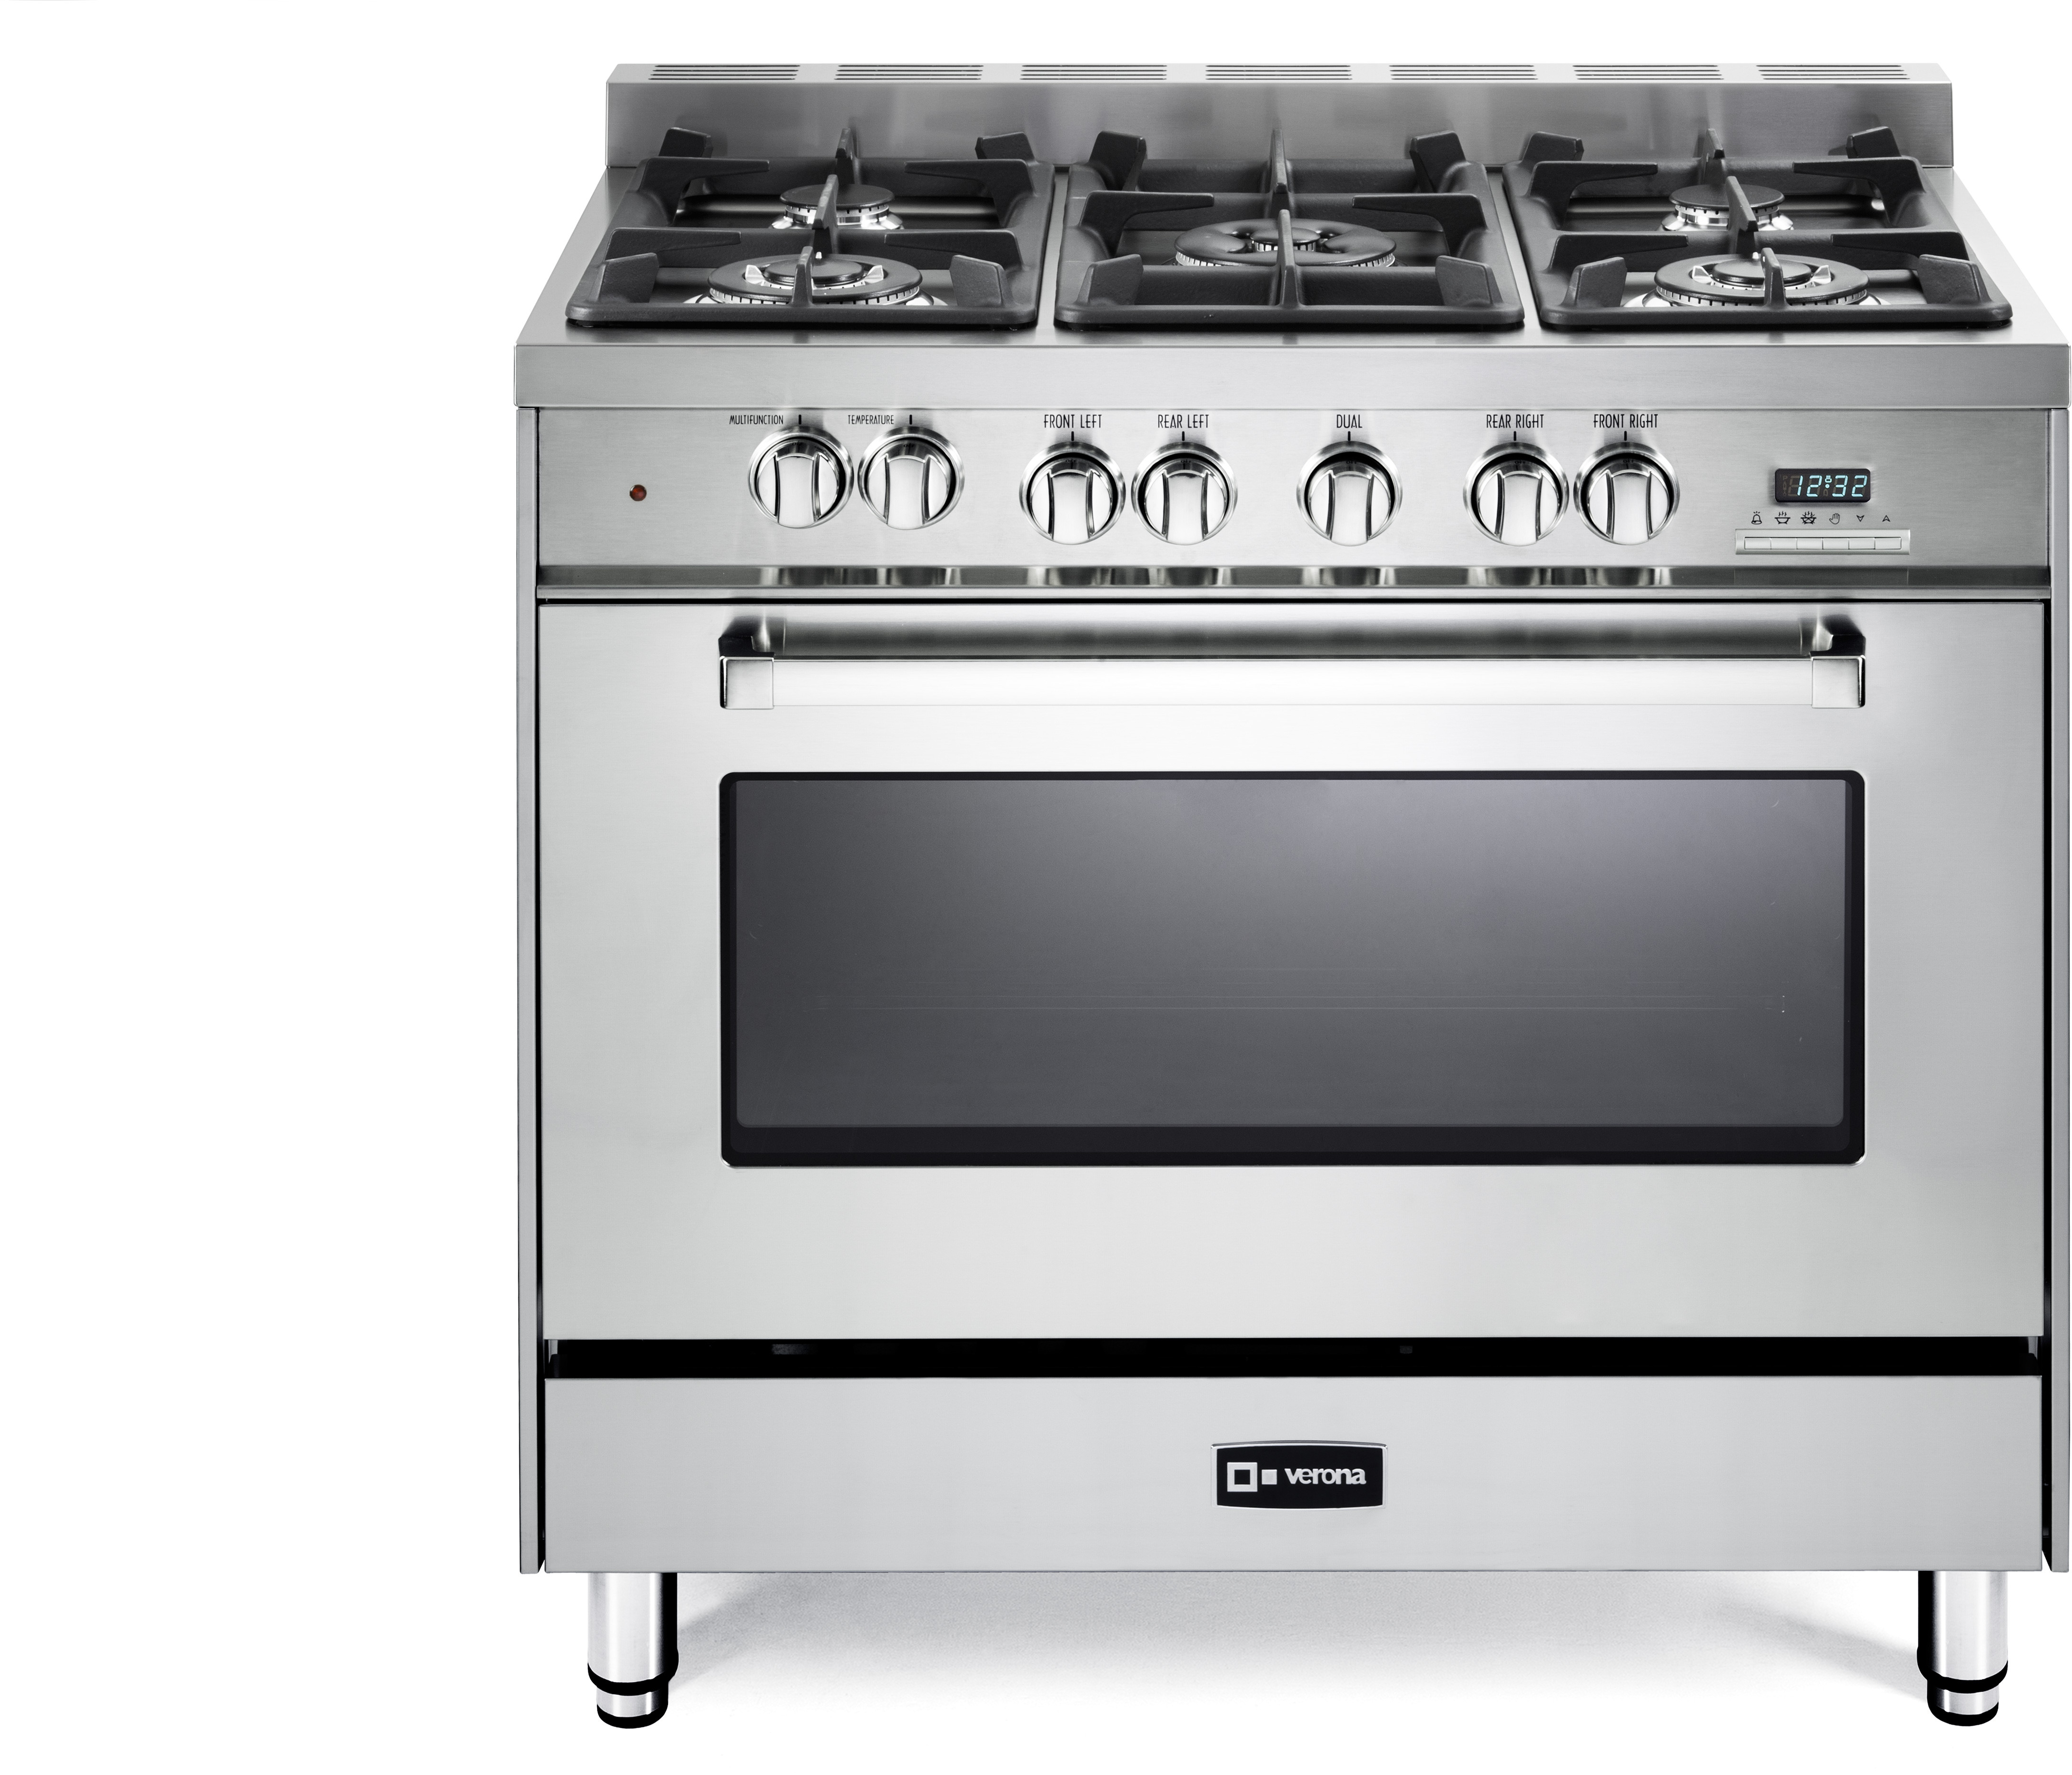 kitchen stoves sink drains dual fuel ranges best rated with reviews aj madison